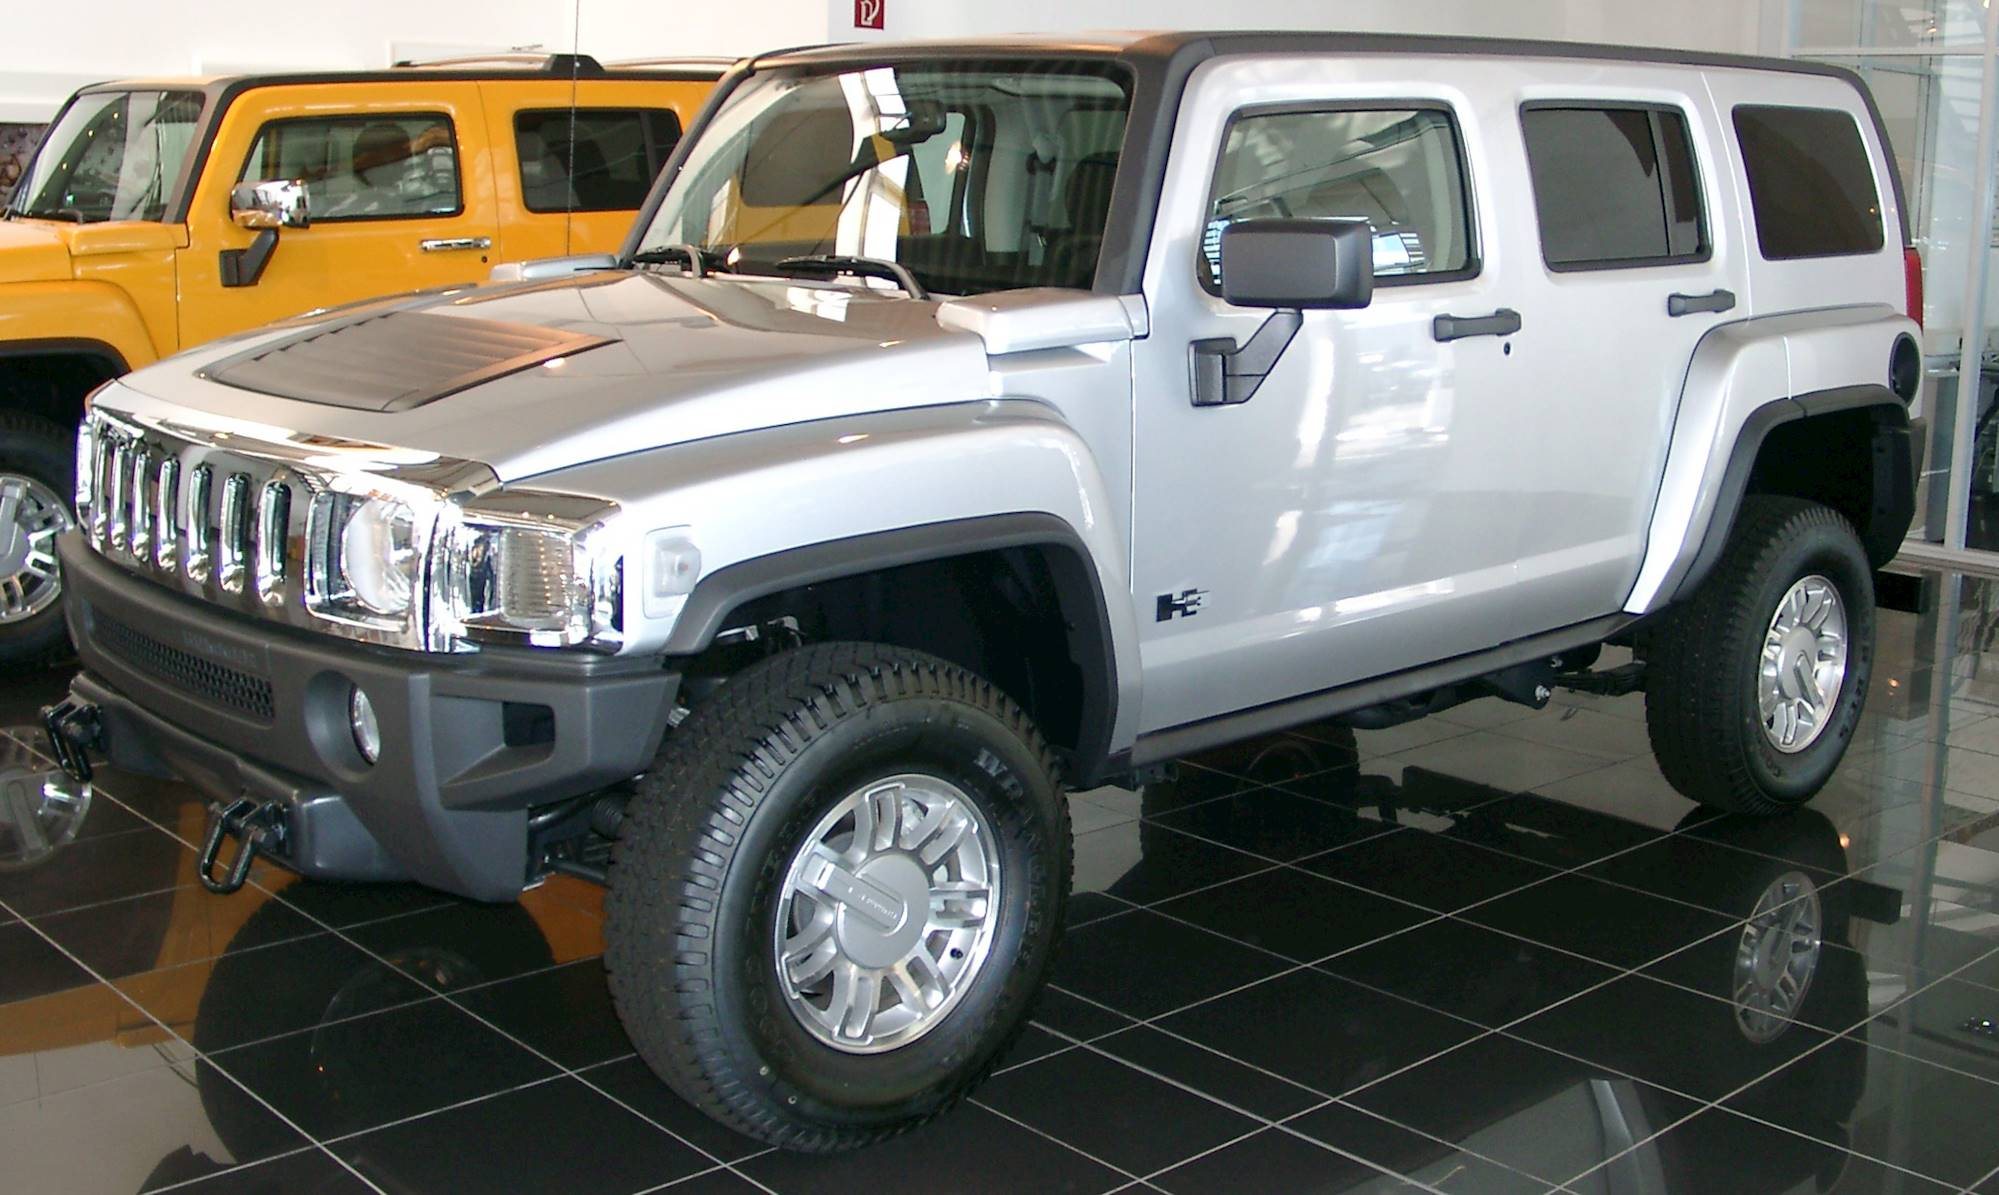 ... File:Hummer H3 front 20070518.jpg - Wikimedia Commons ...